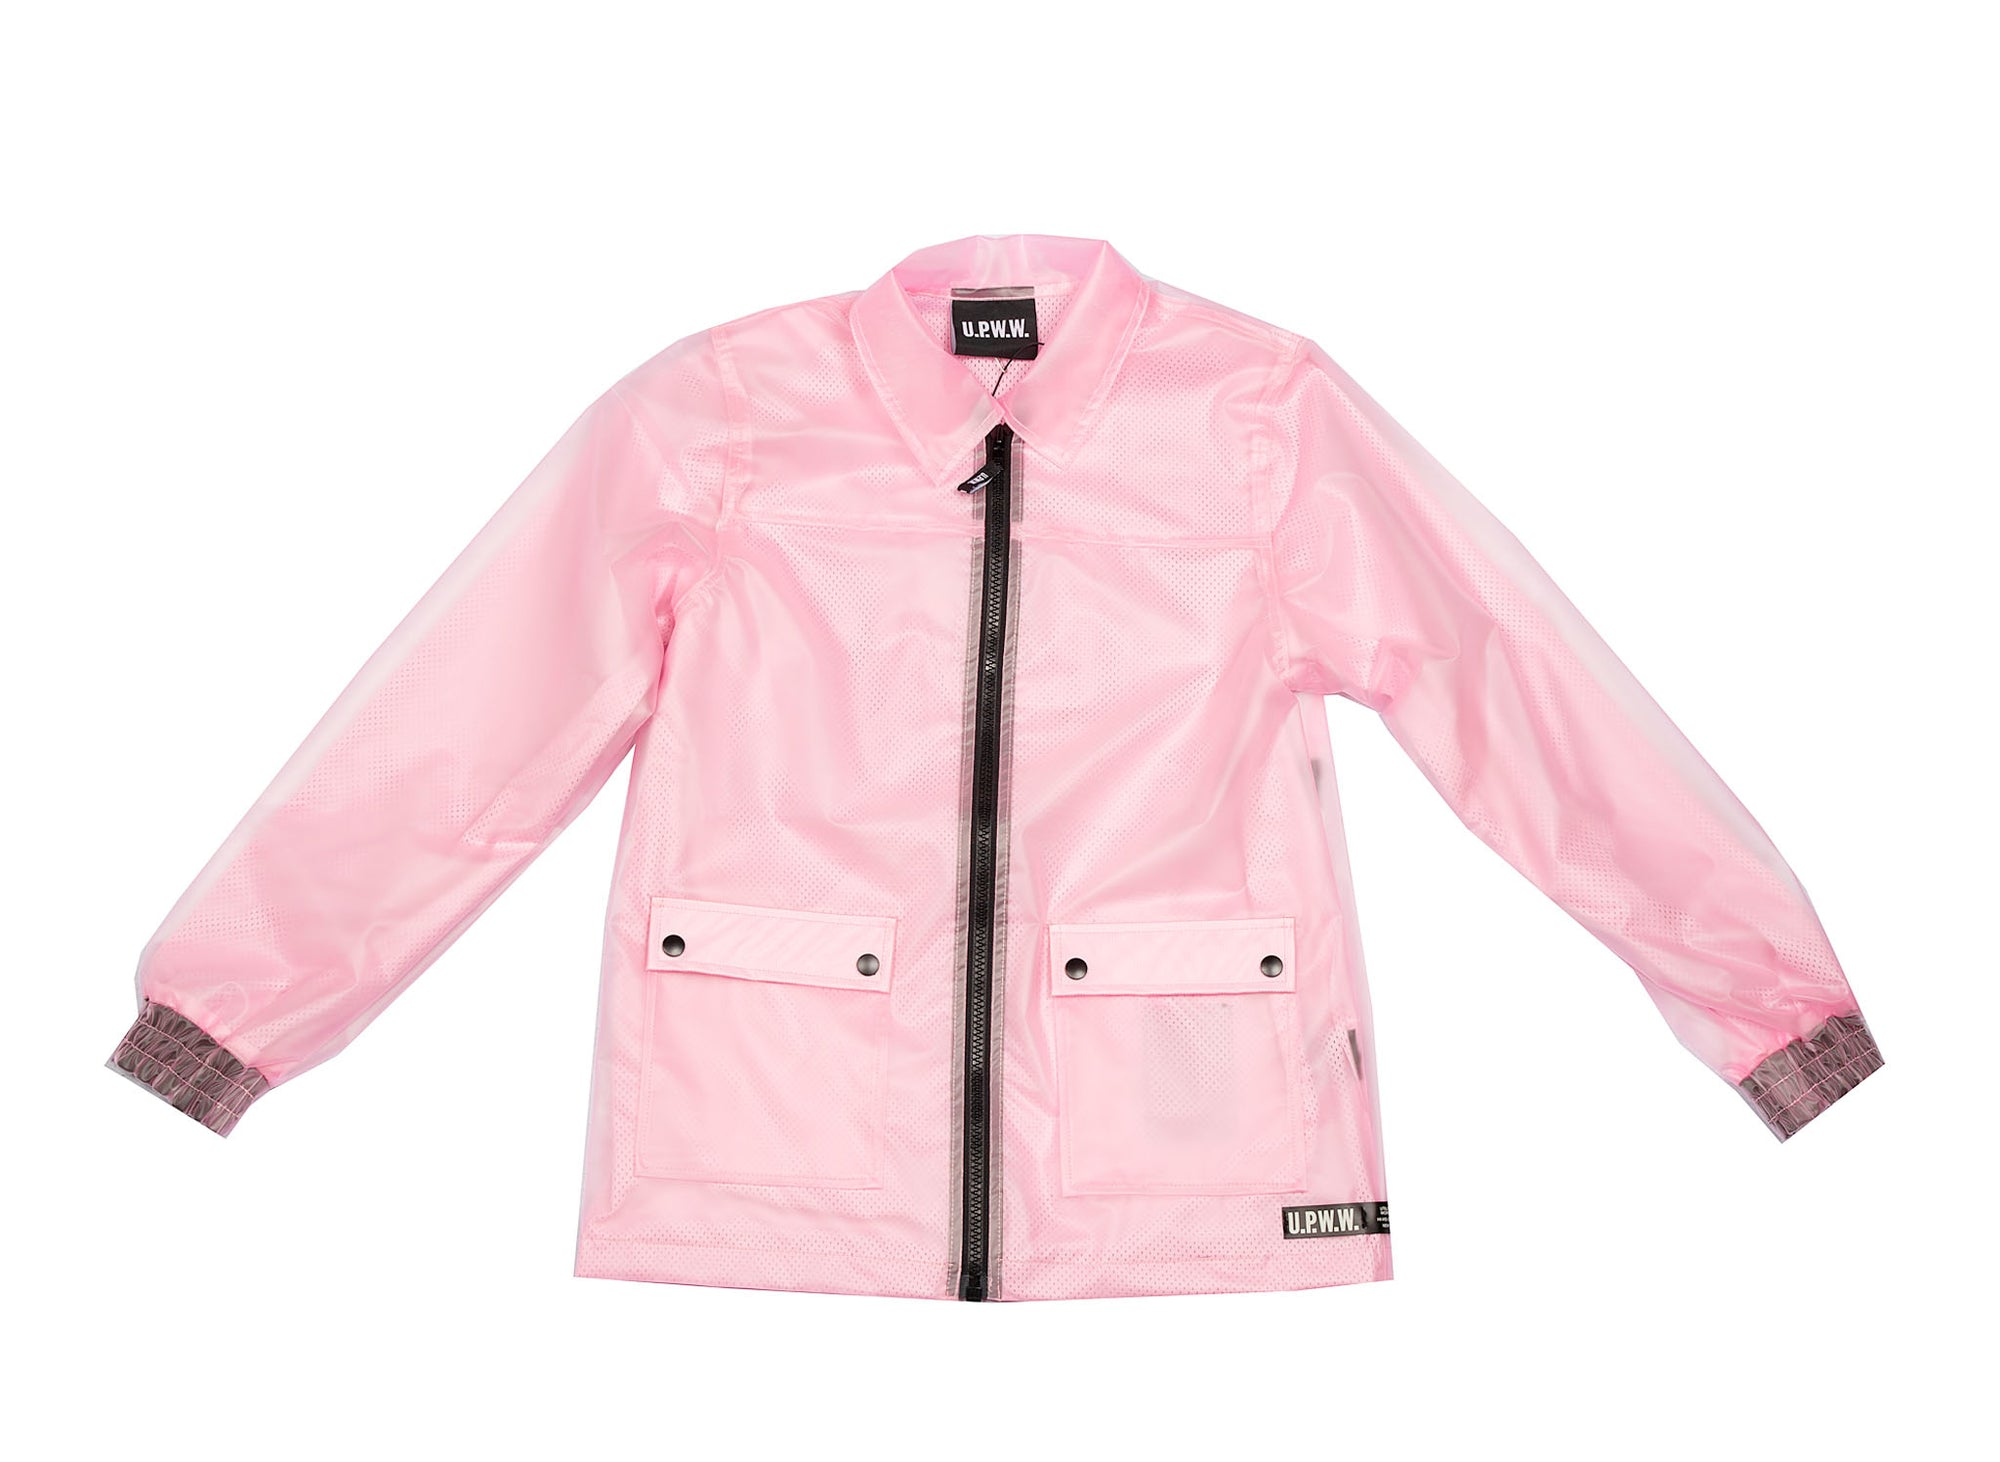 U.P.W.W. Transparent coaches jacket